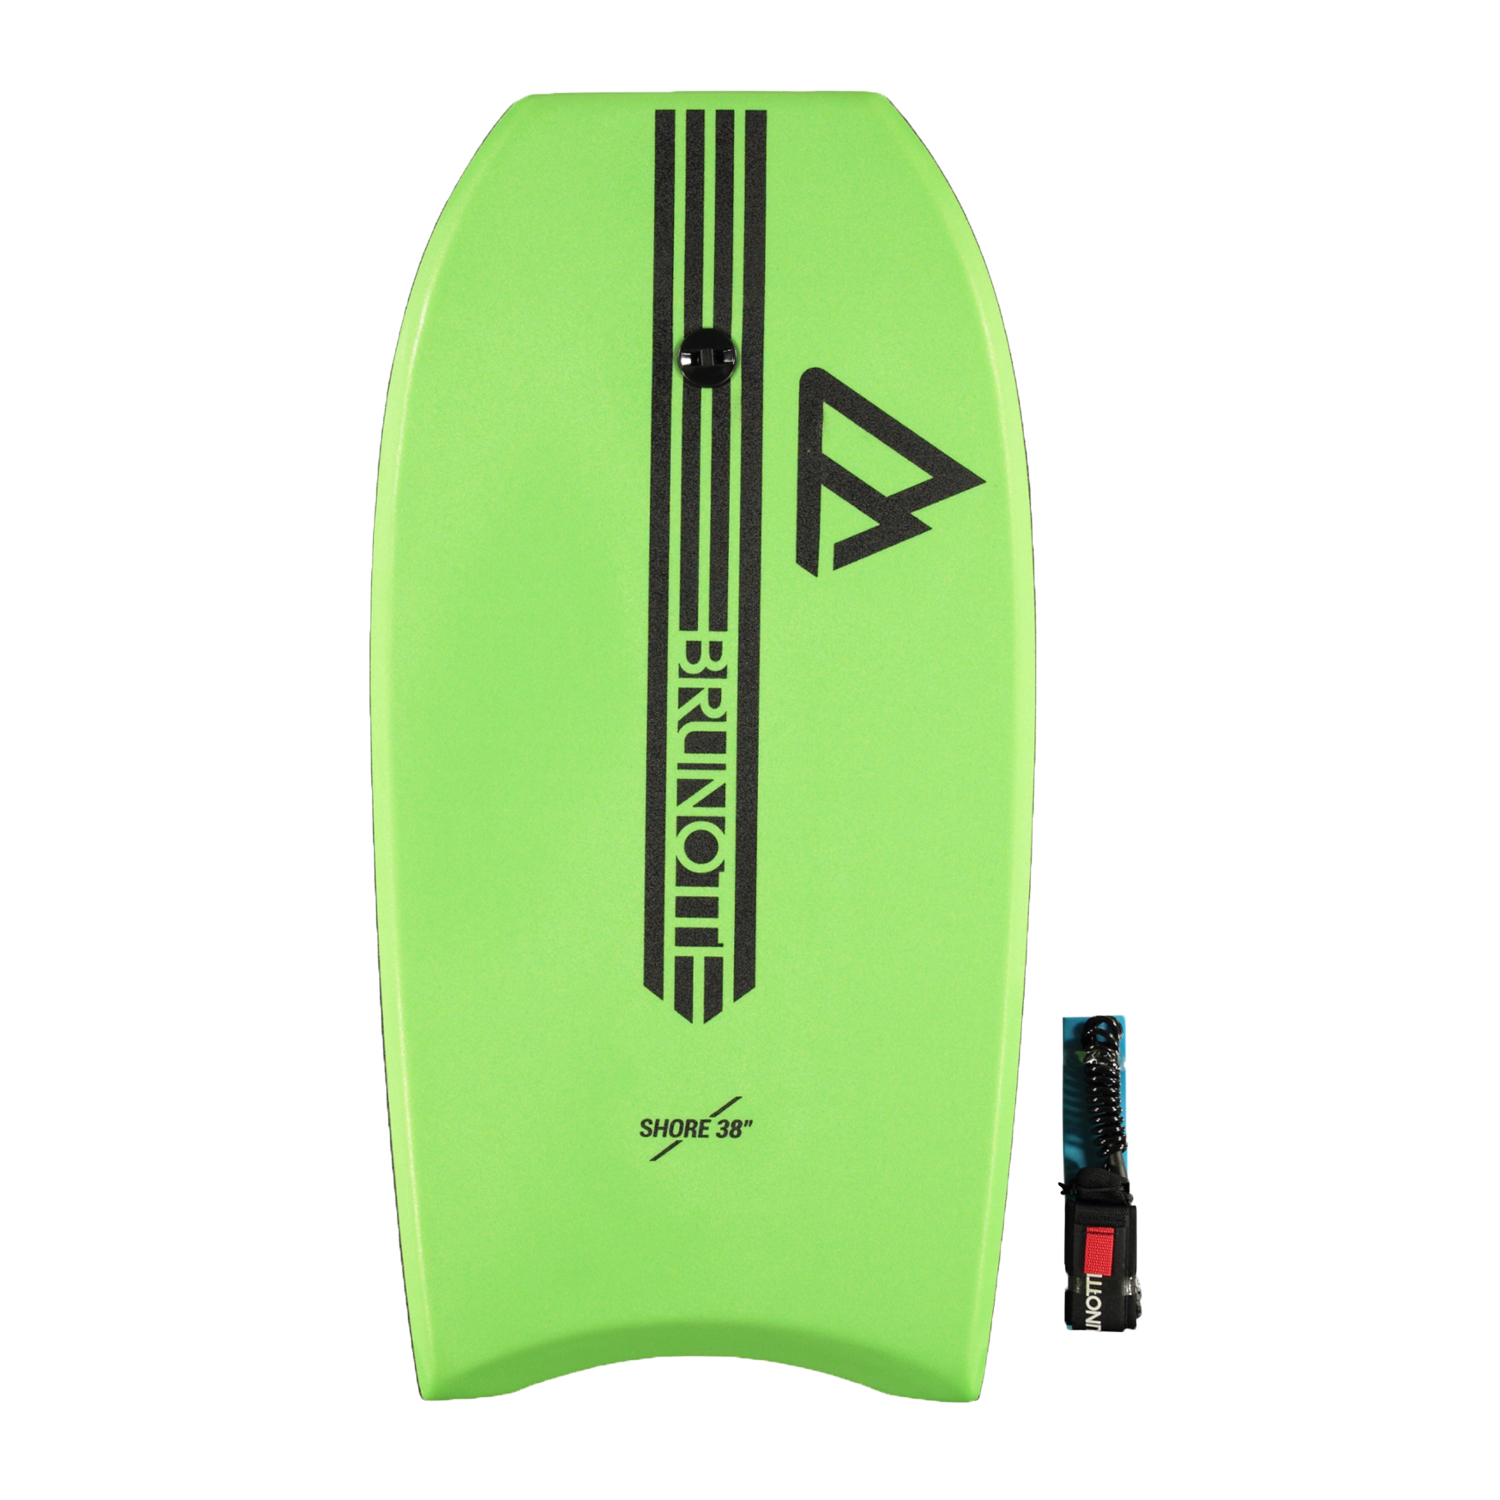 SHORE 38'' BODYBOARD LIME BRUNOTTI 2018